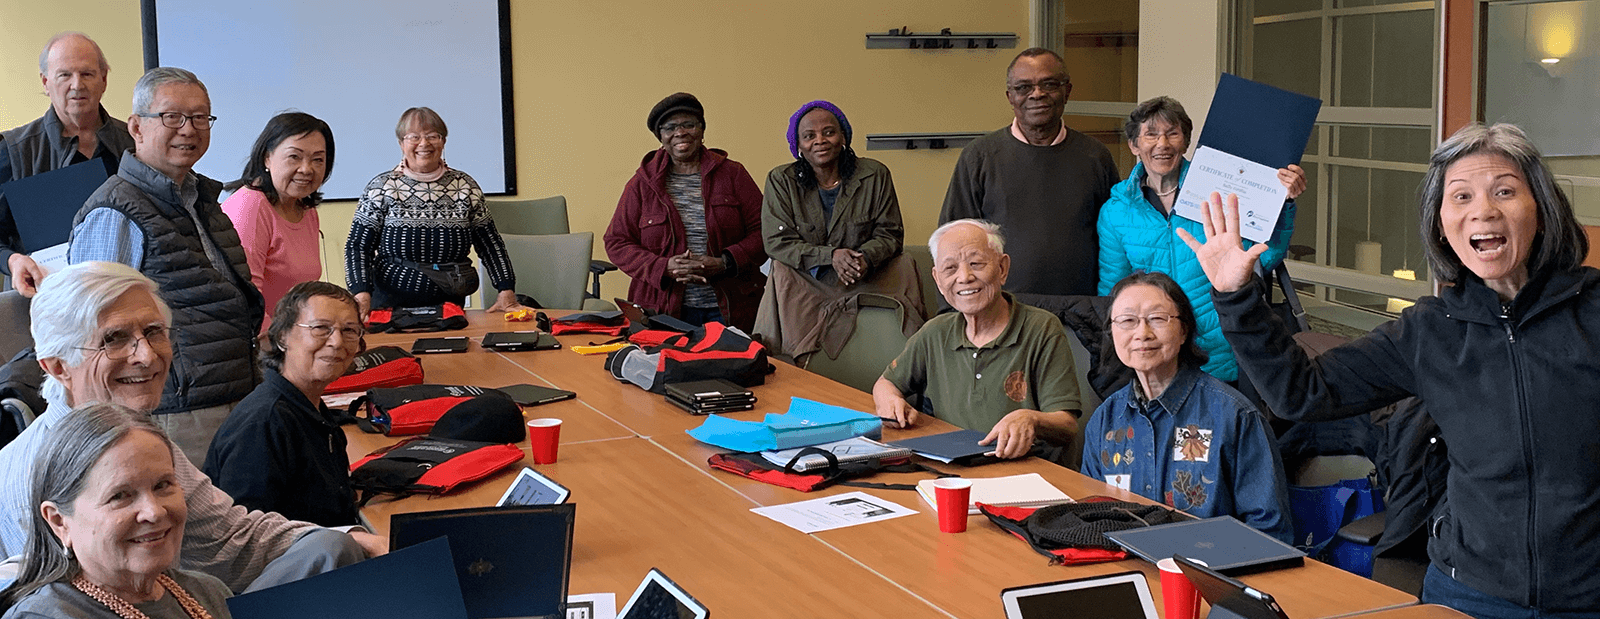 Digtal Equity Slider - Image of a group of seniors learning to use technology